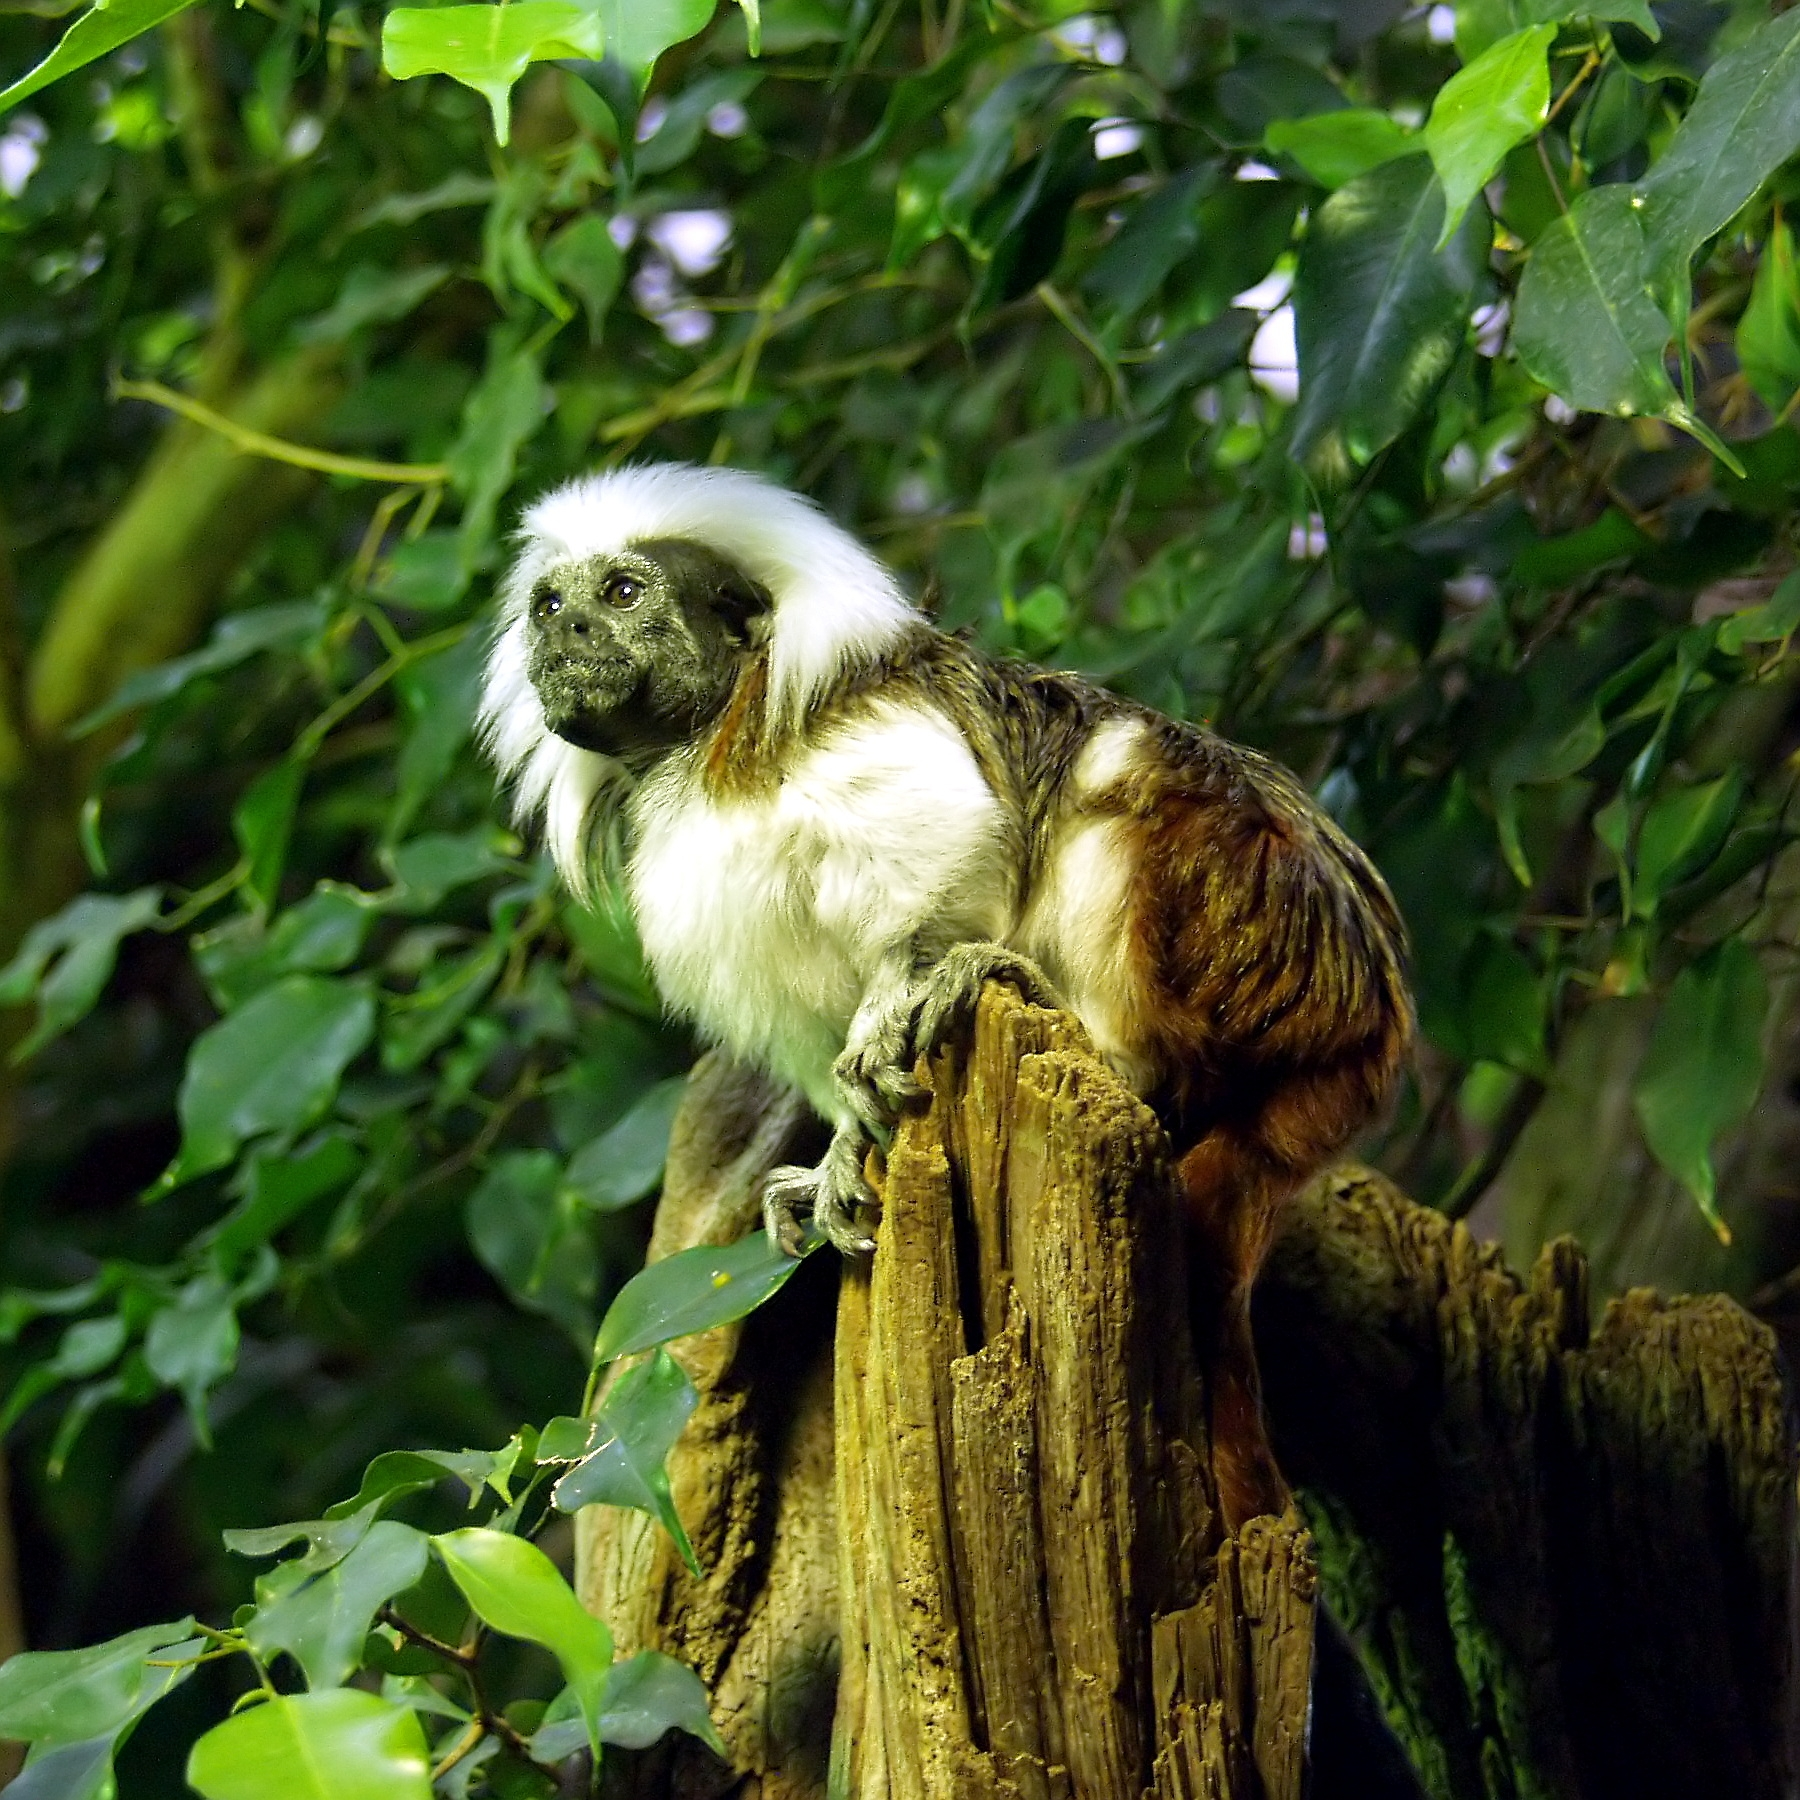 https://upload.wikimedia.org/wikipedia/commons/a/a0/Lisztaffe_-_Cottontop_Tamarin_-_Saguinus_oedipus.jpg